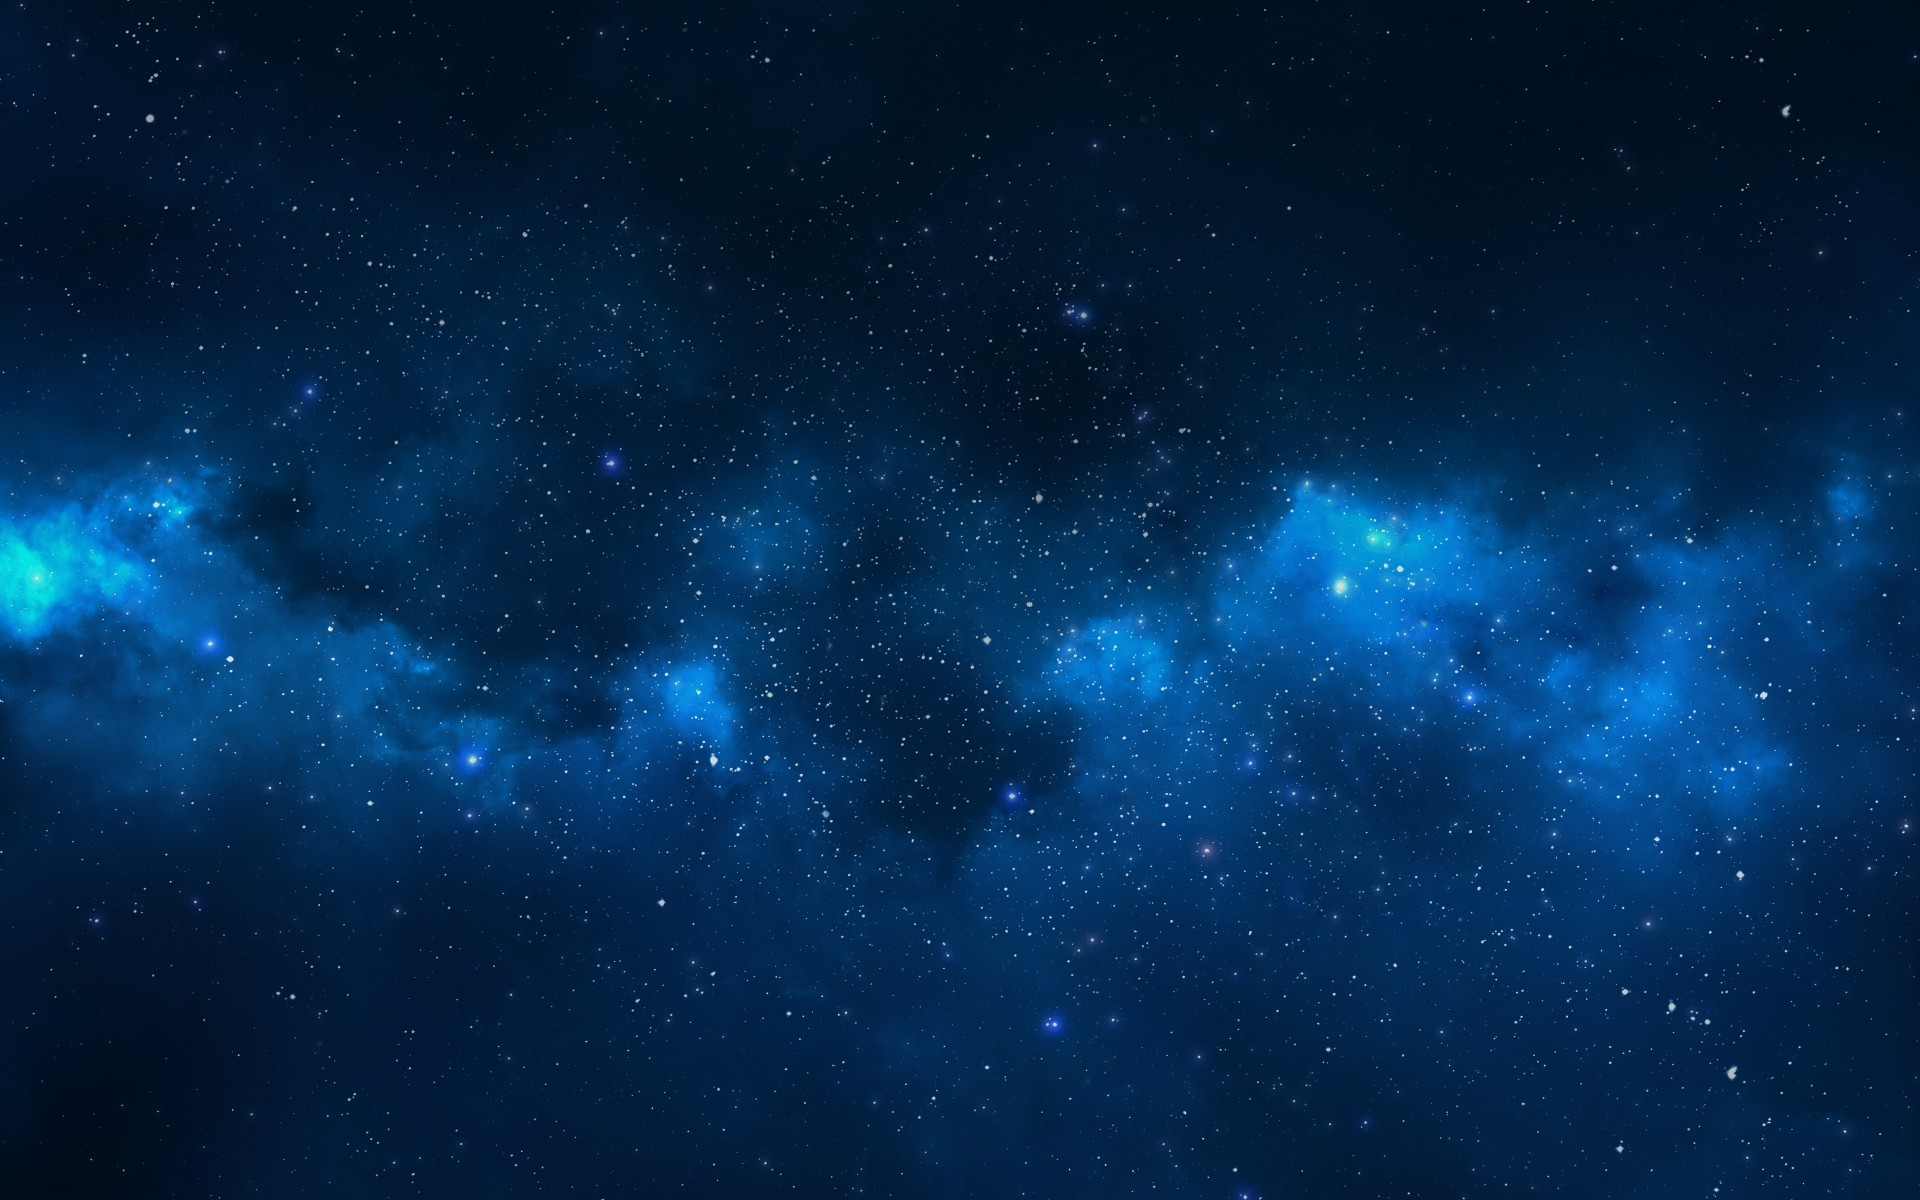 night-sky-hd-wallpaper 2